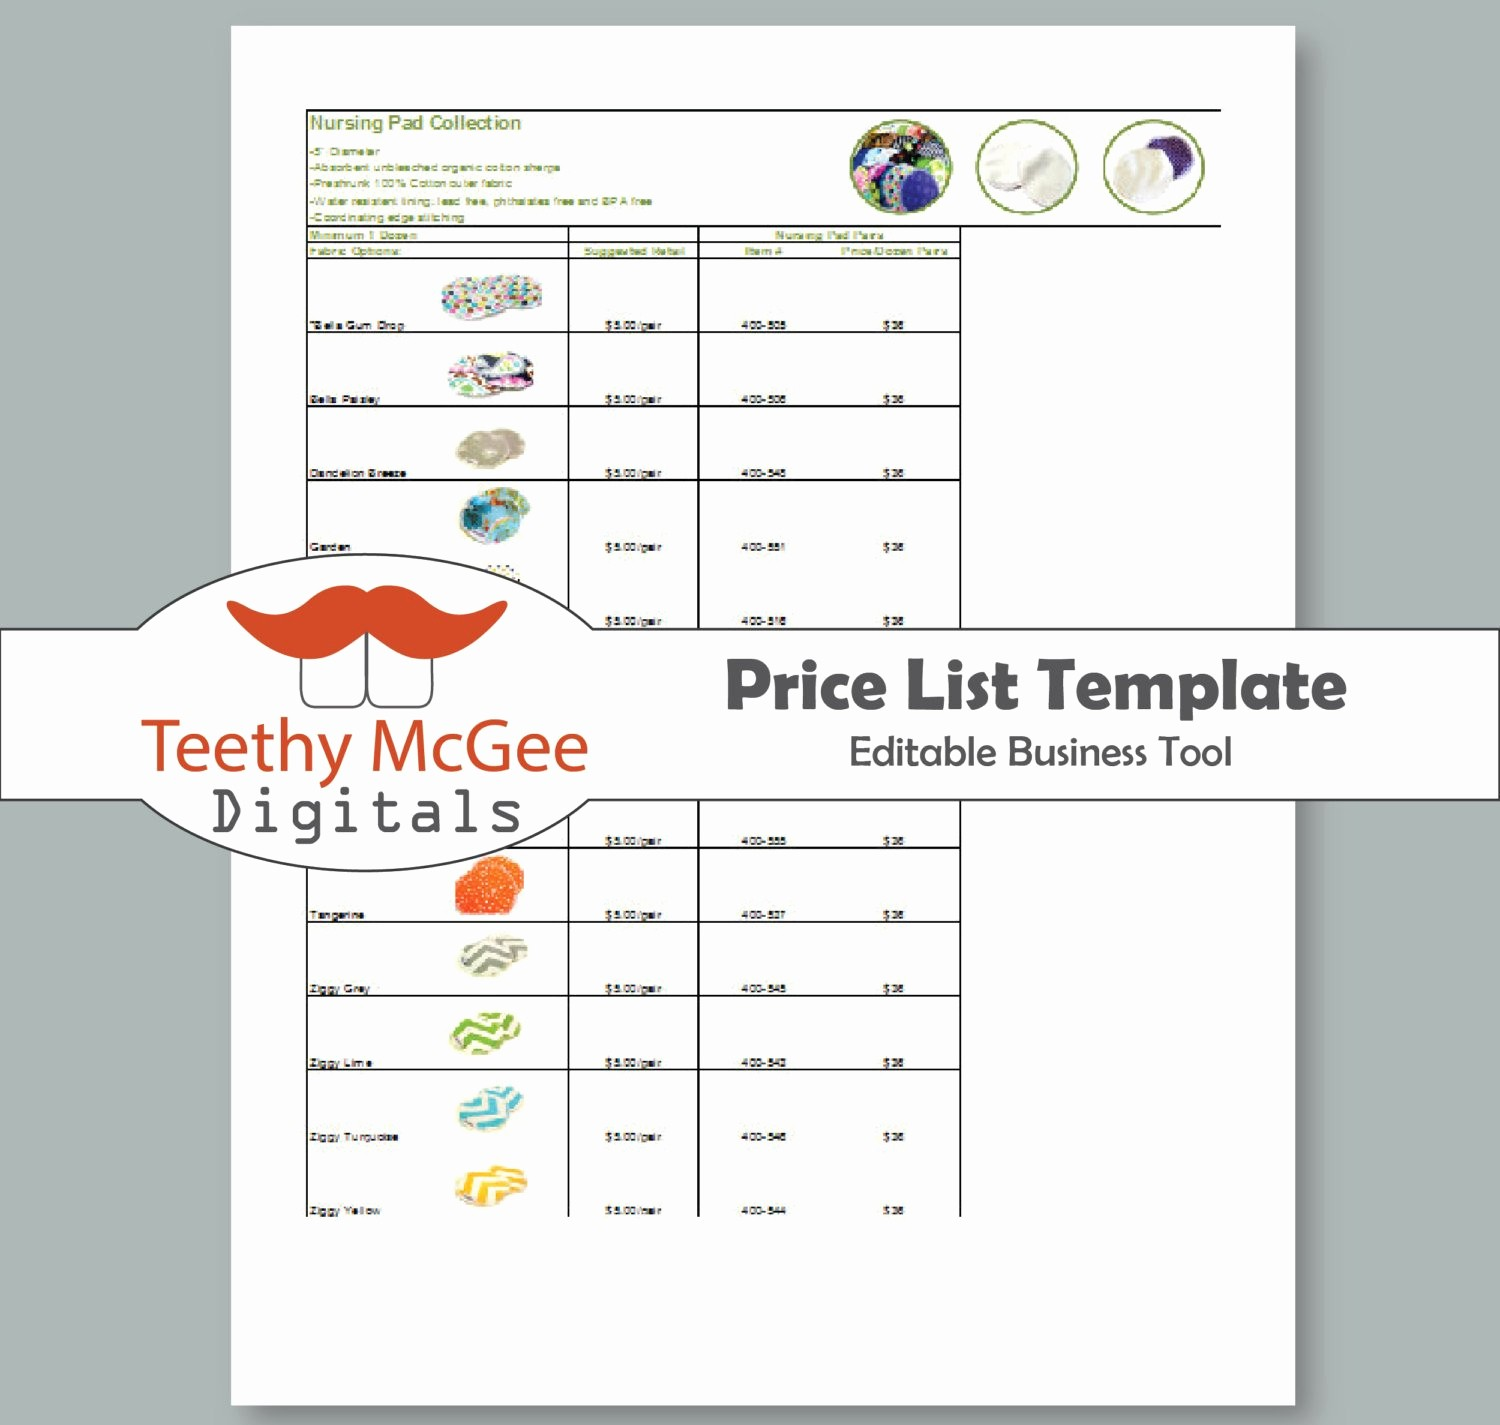 Create A Price List Template Lovely Price List Template Instant Download Editable for wholesale